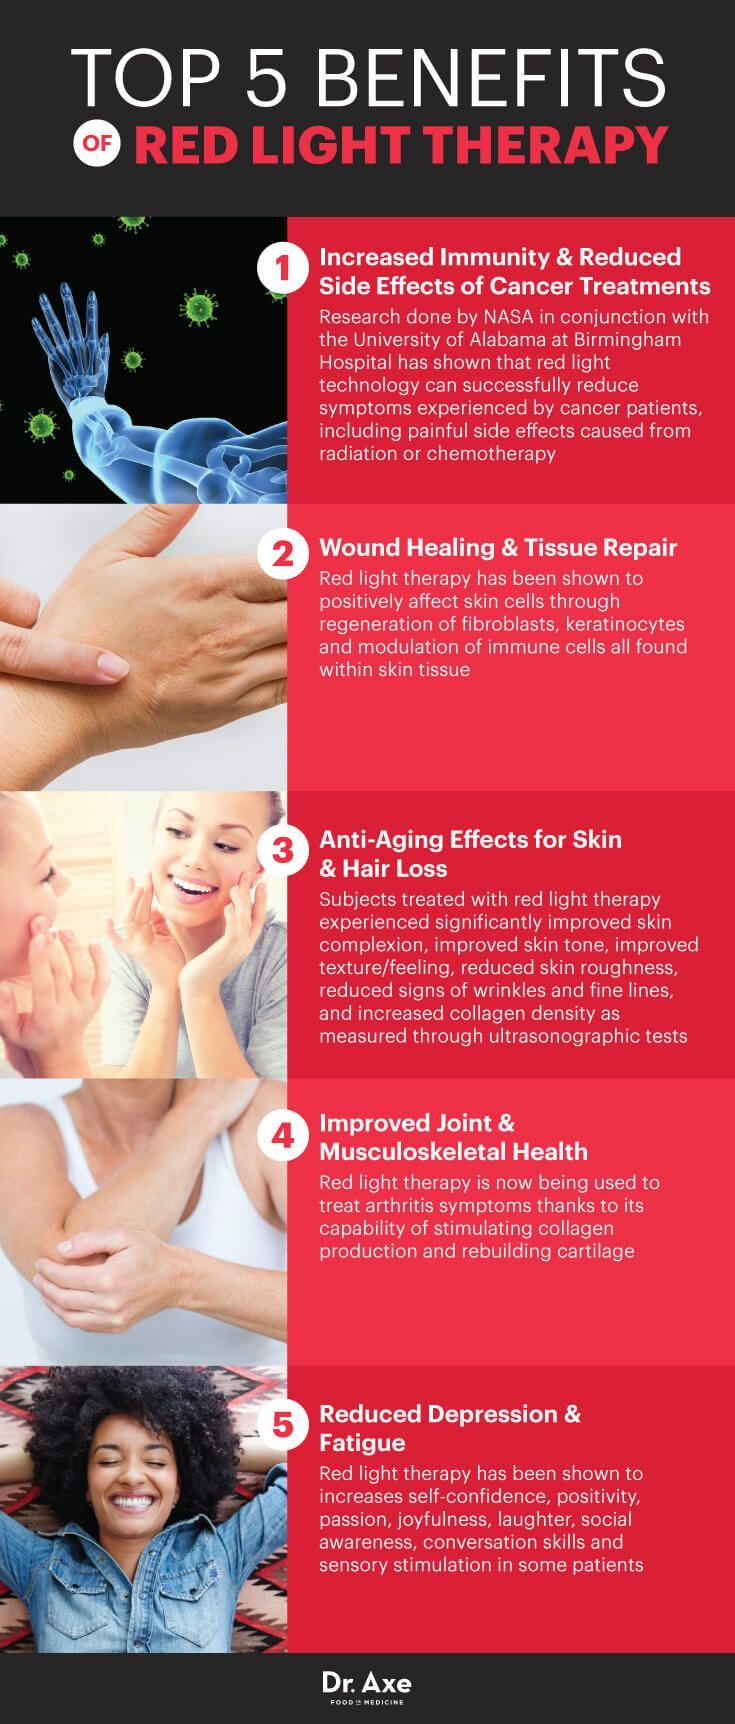 Red Light Therapy Benefits, Research & Mechanism of Action - Dr. Axe